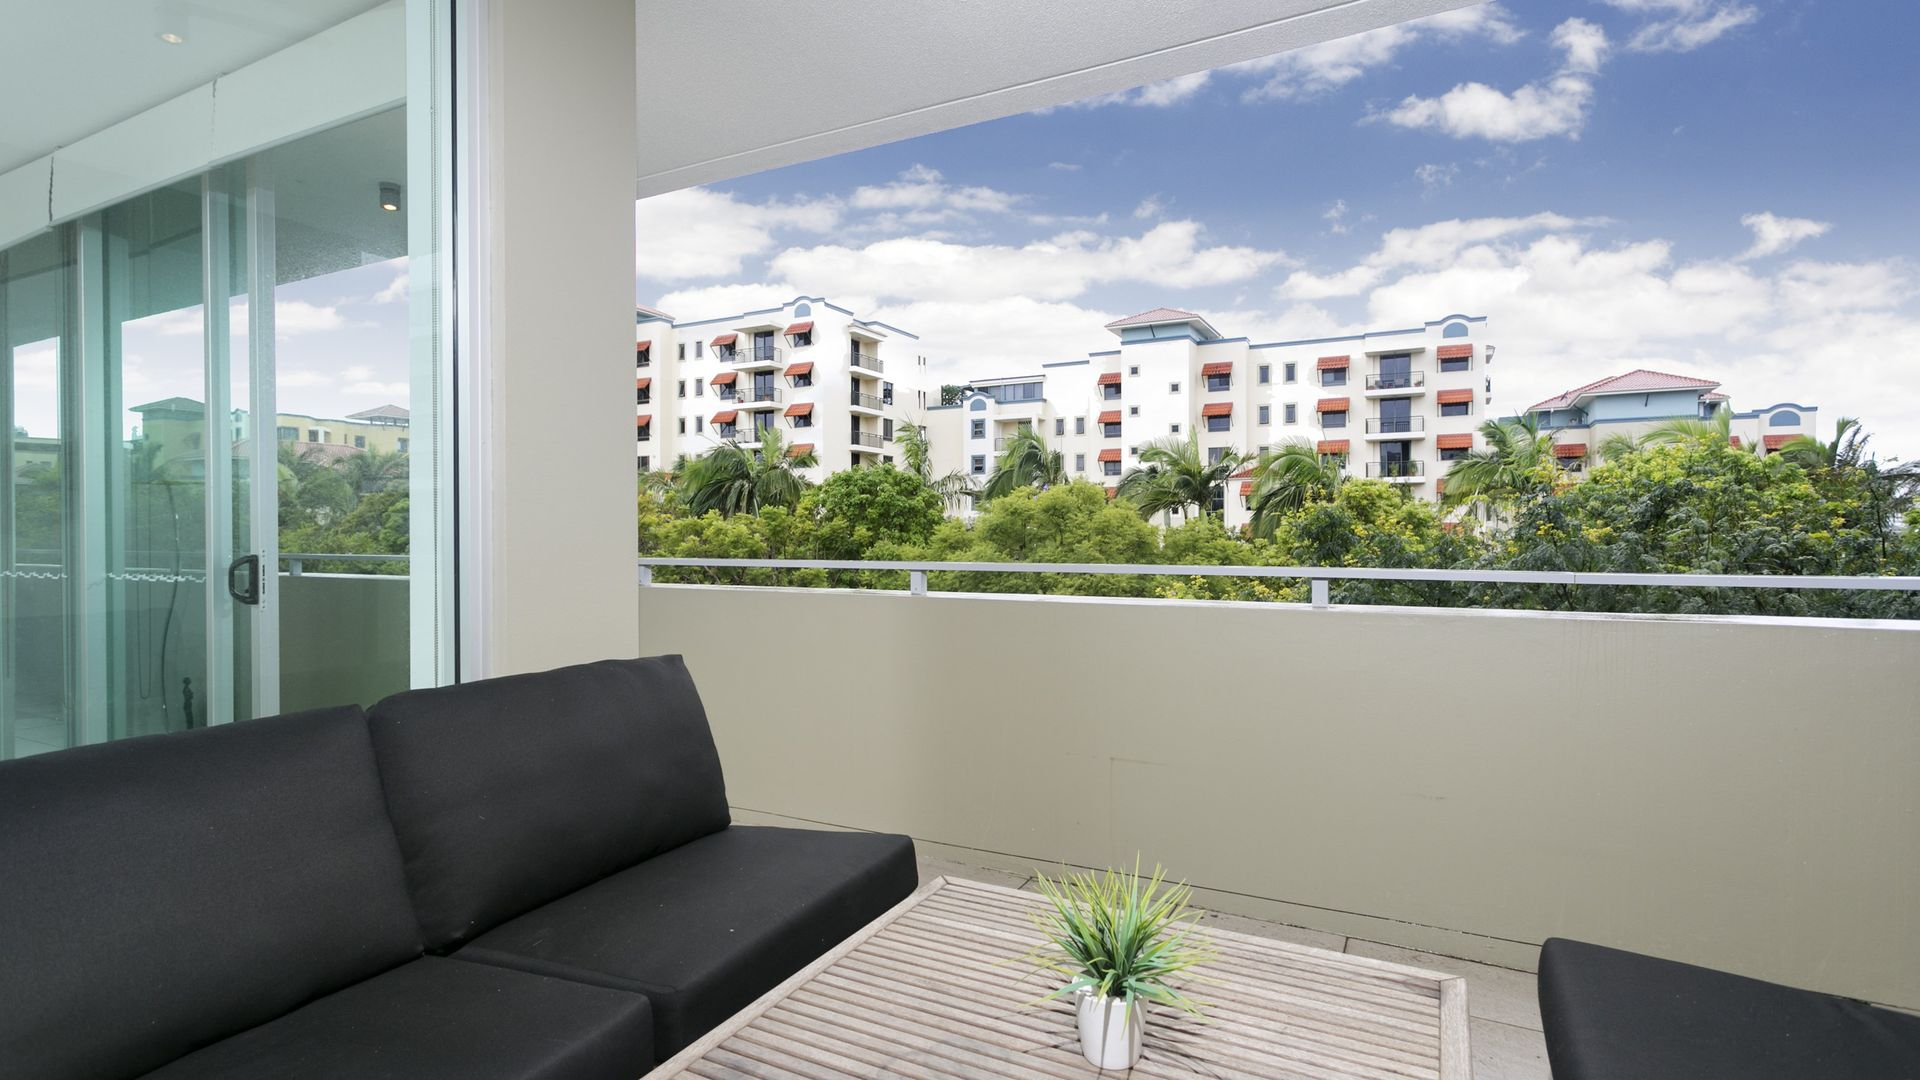 20 newstead terrace newstead qld 4006 apartment for